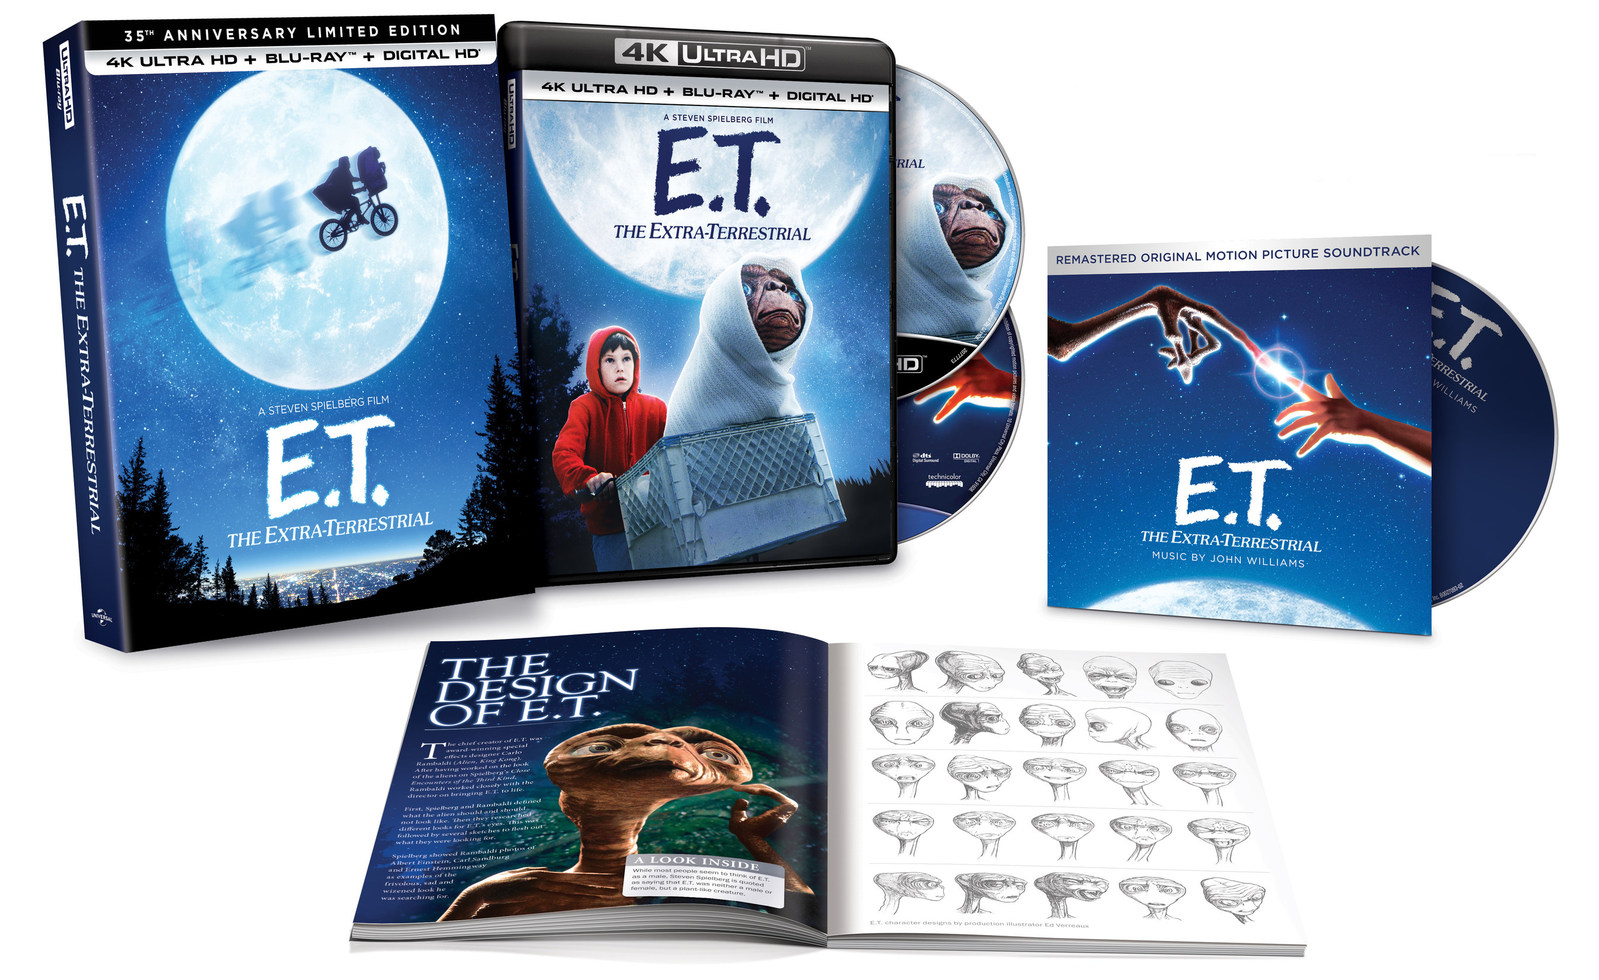 E.T. The Extra-Terrestrial 35th Anniversary Gift Set Coming to Blu-ray and 4K on 9/12